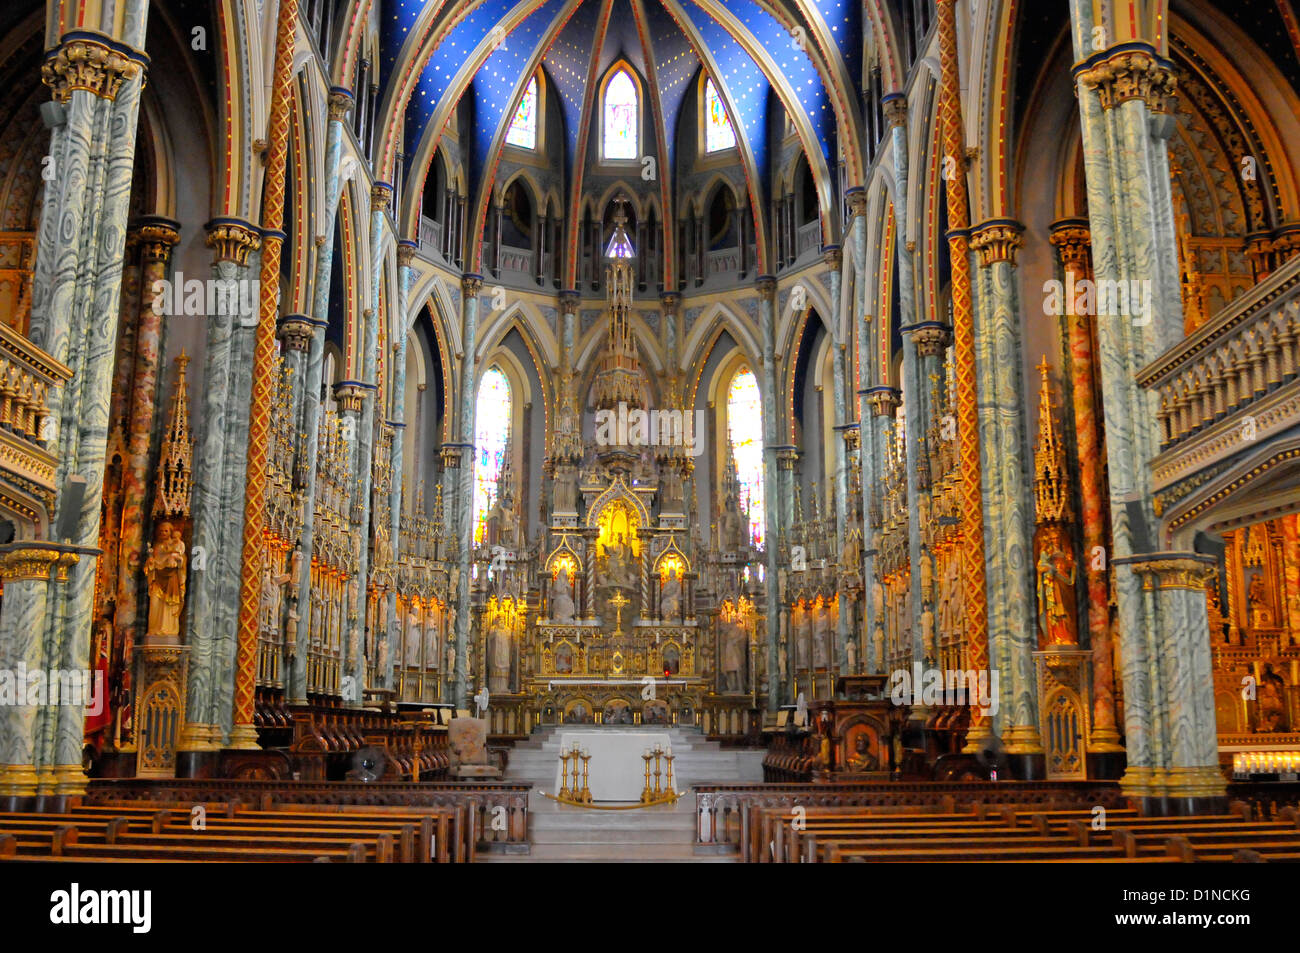 Notre Dame organist graces cathedral with 'emotional improvisations'